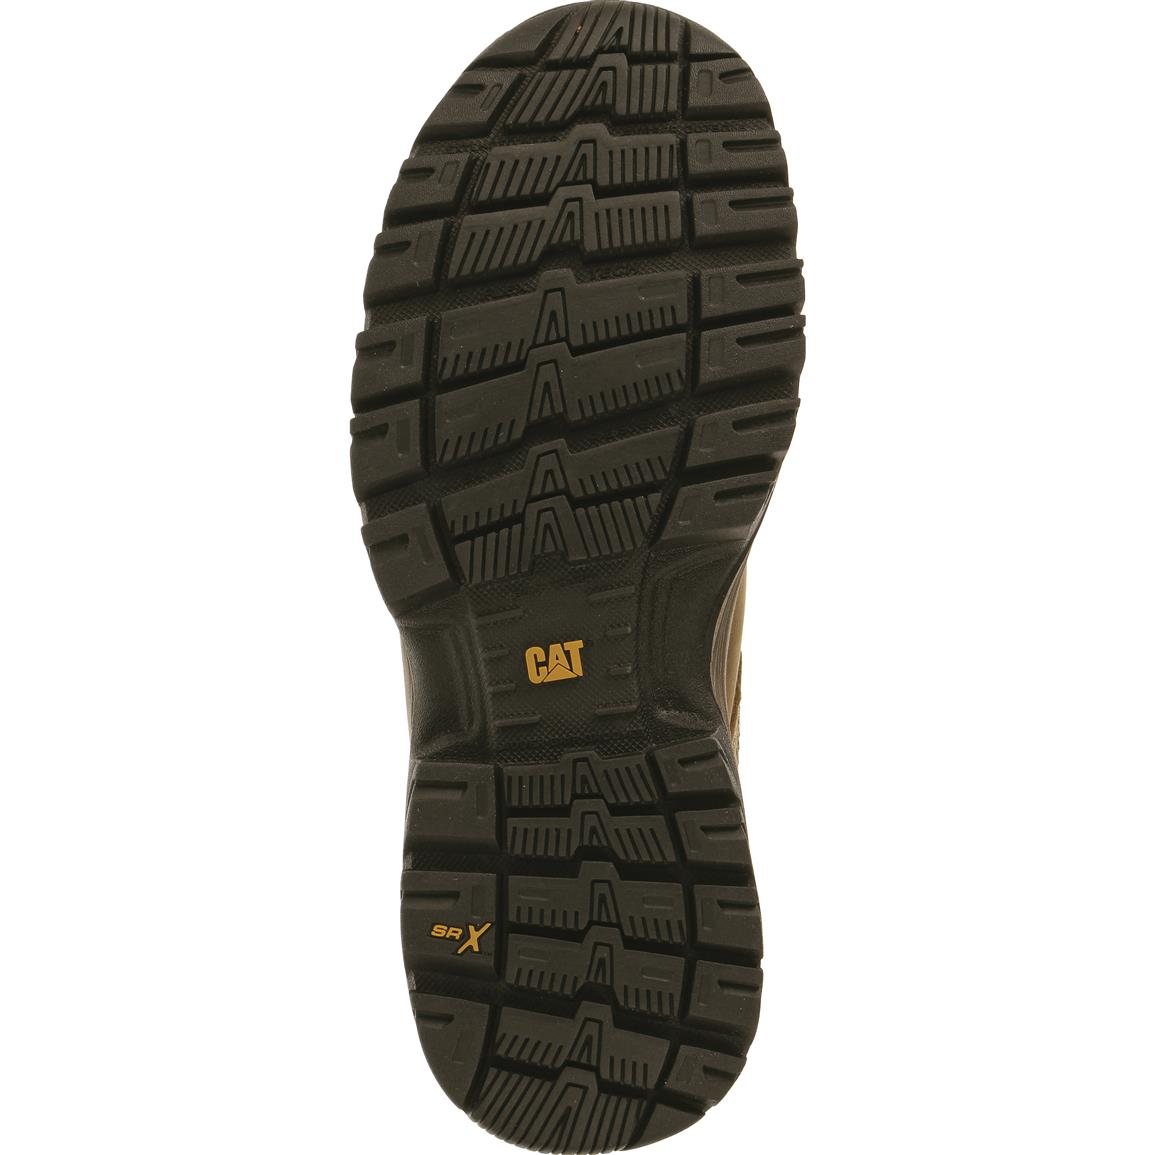 5-star abrasion, heat, water and overall slip-resistant outsole